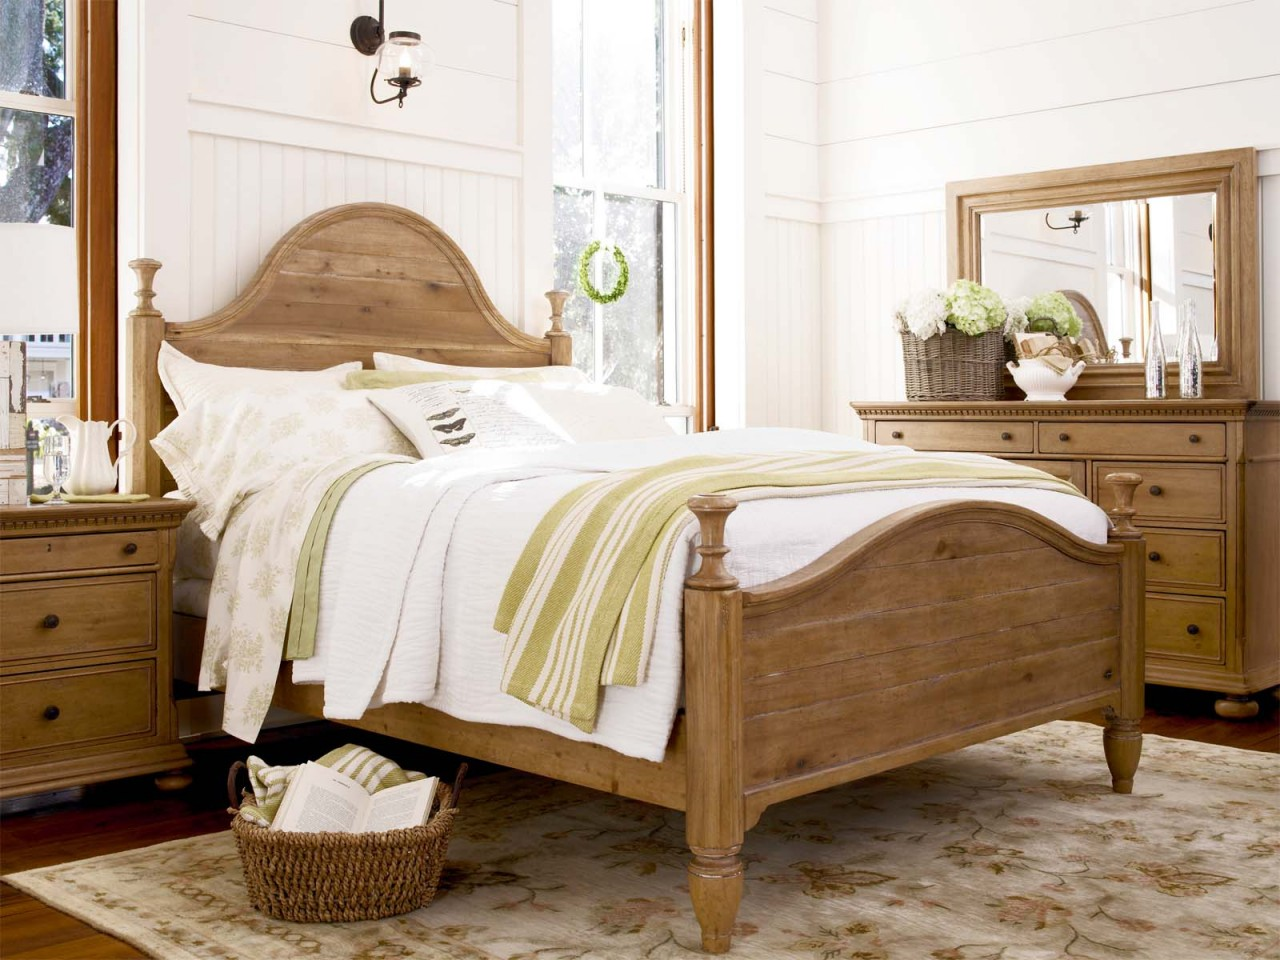 Image of: Paula deen bedroom furniture ideas